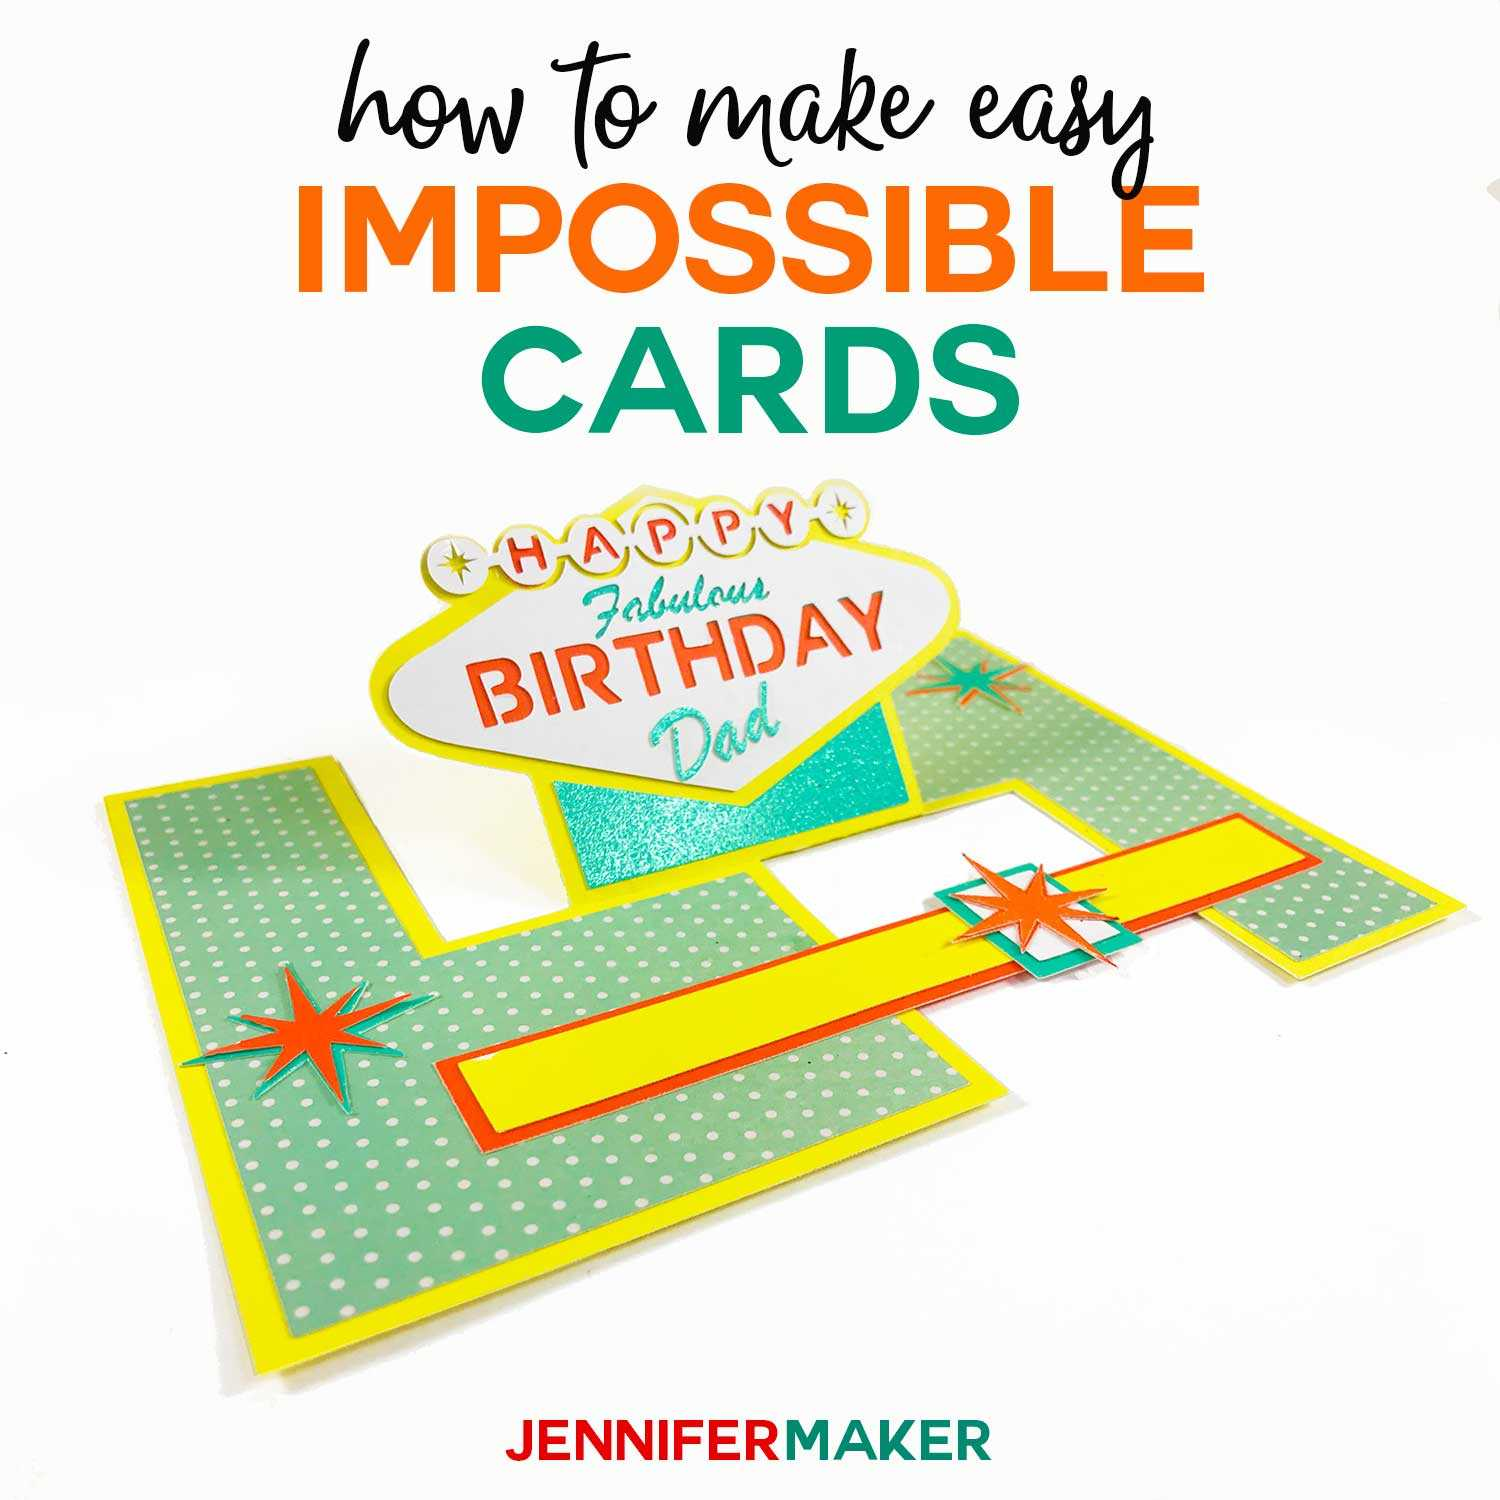 Impossible Card Templates: Super Easy Pop Up Cards Intended For Diy Pop Up Cards Templates